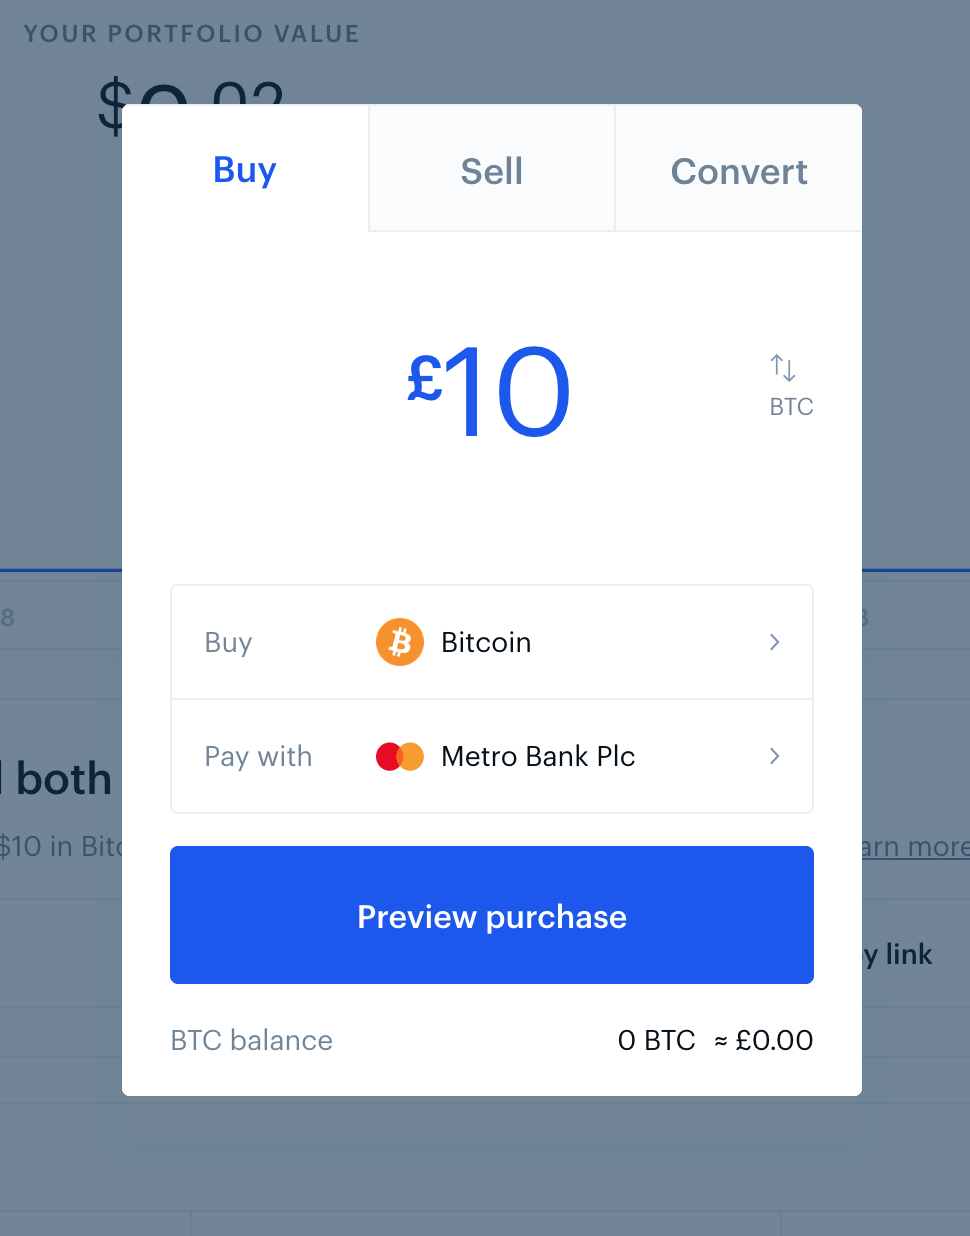 Step-by-step instructions make it easy to learn how to buy cryptocurrency.